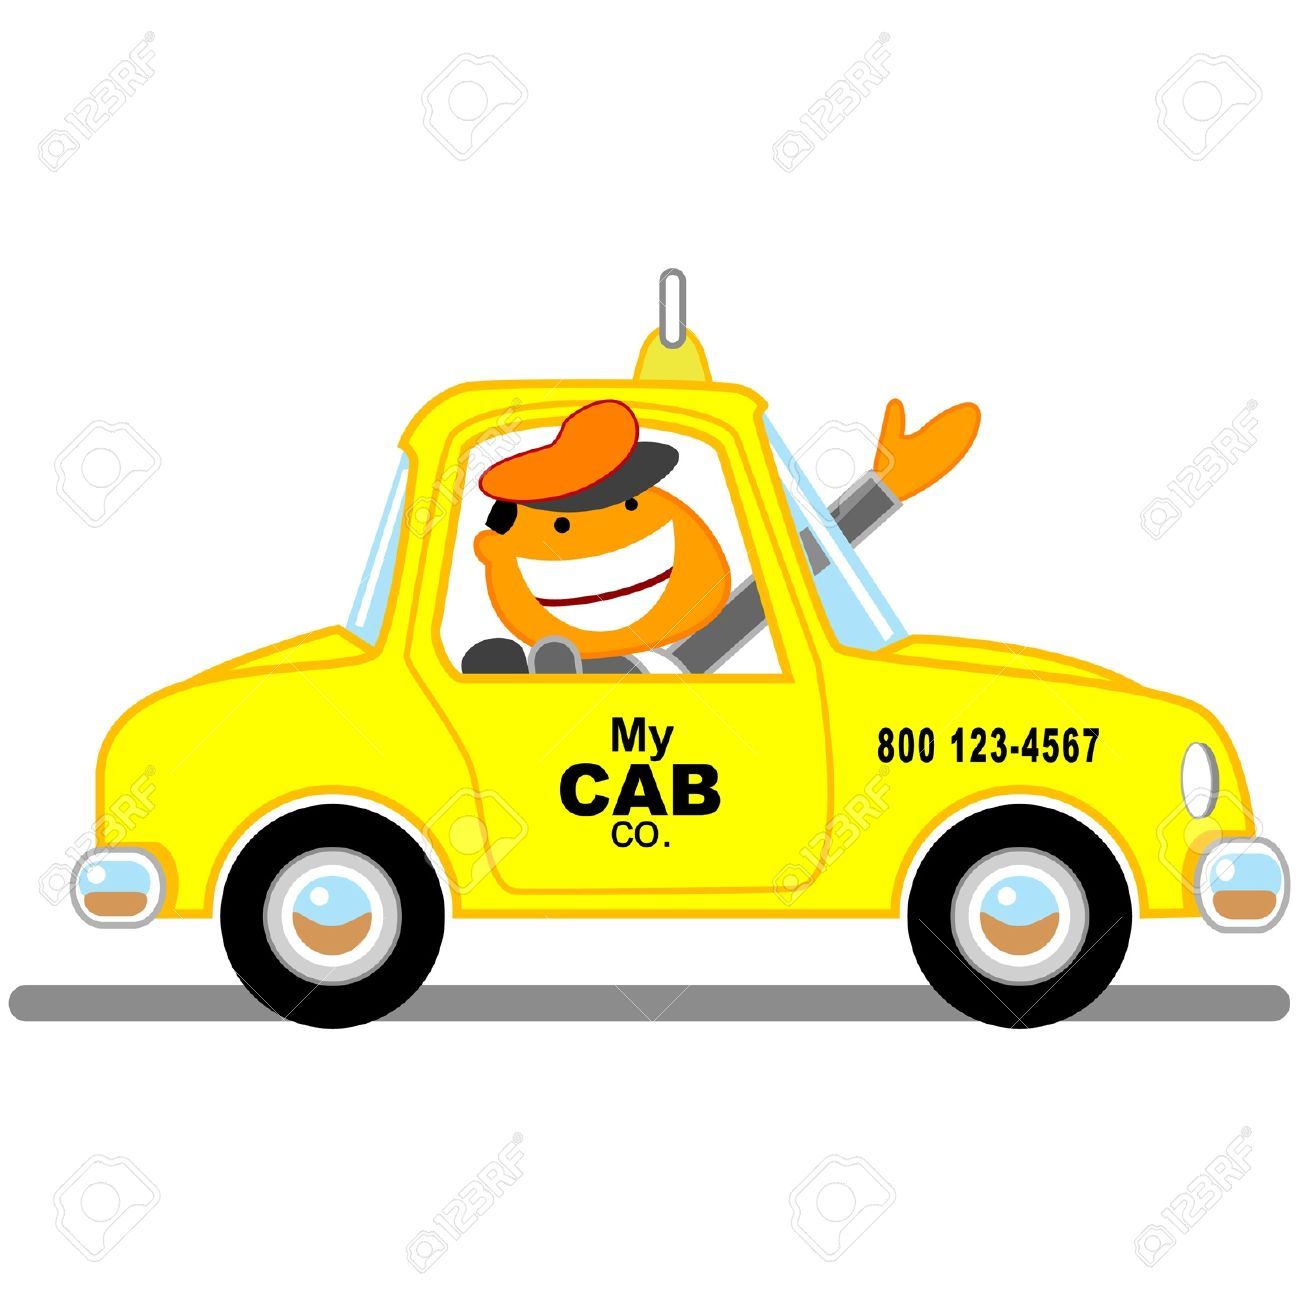 Cab clipart 1 » Clipart Station.